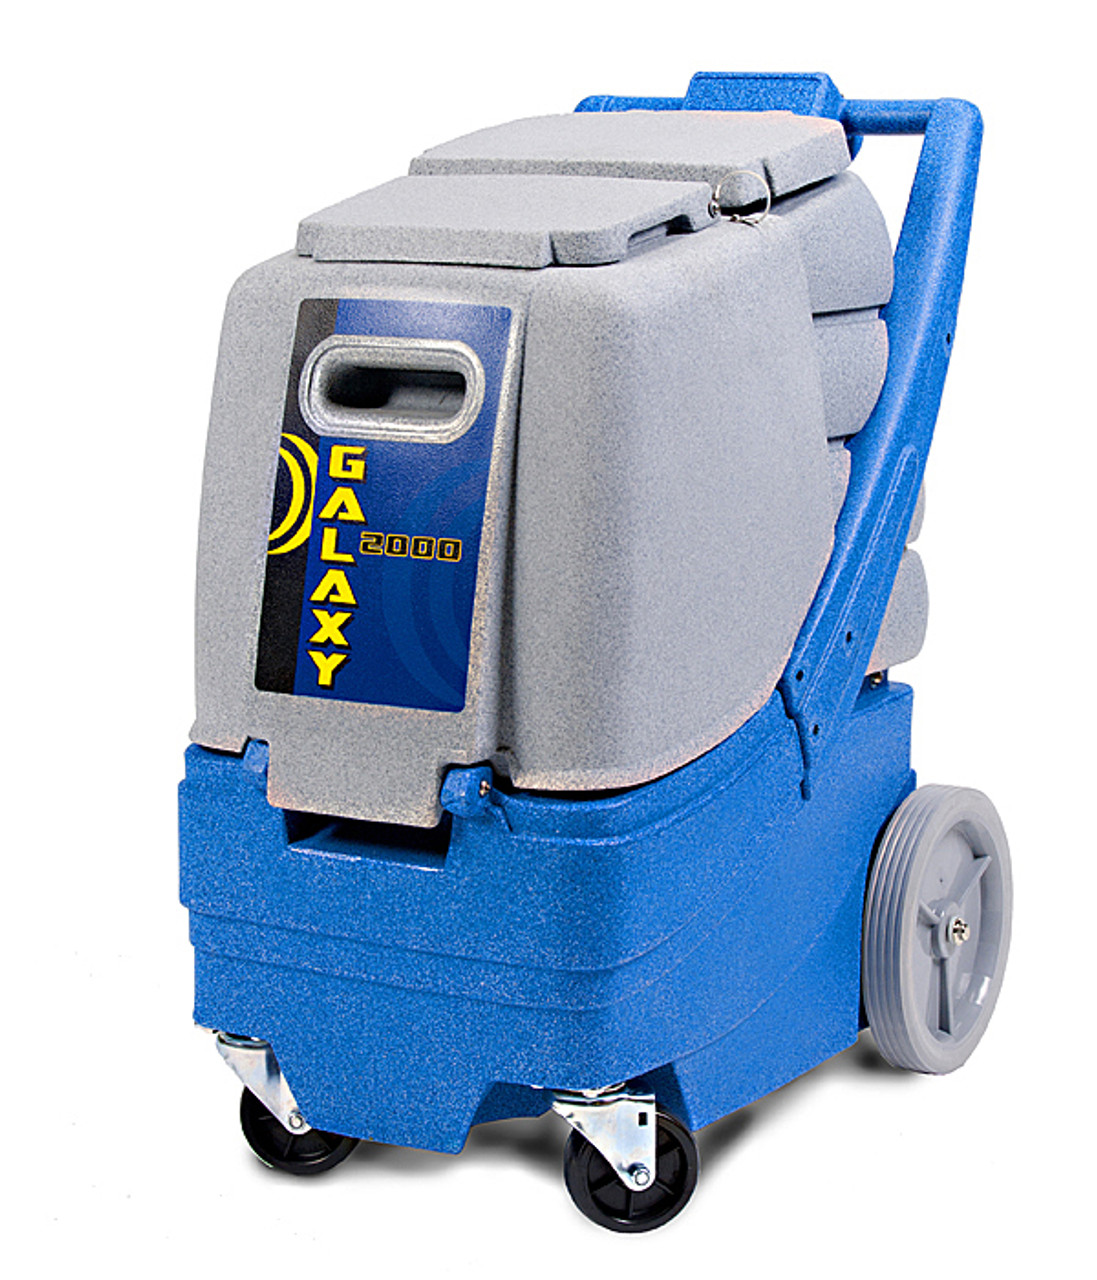 Edic Galaxy 2000sx Hr 12 Gallon Carpet Extractor The